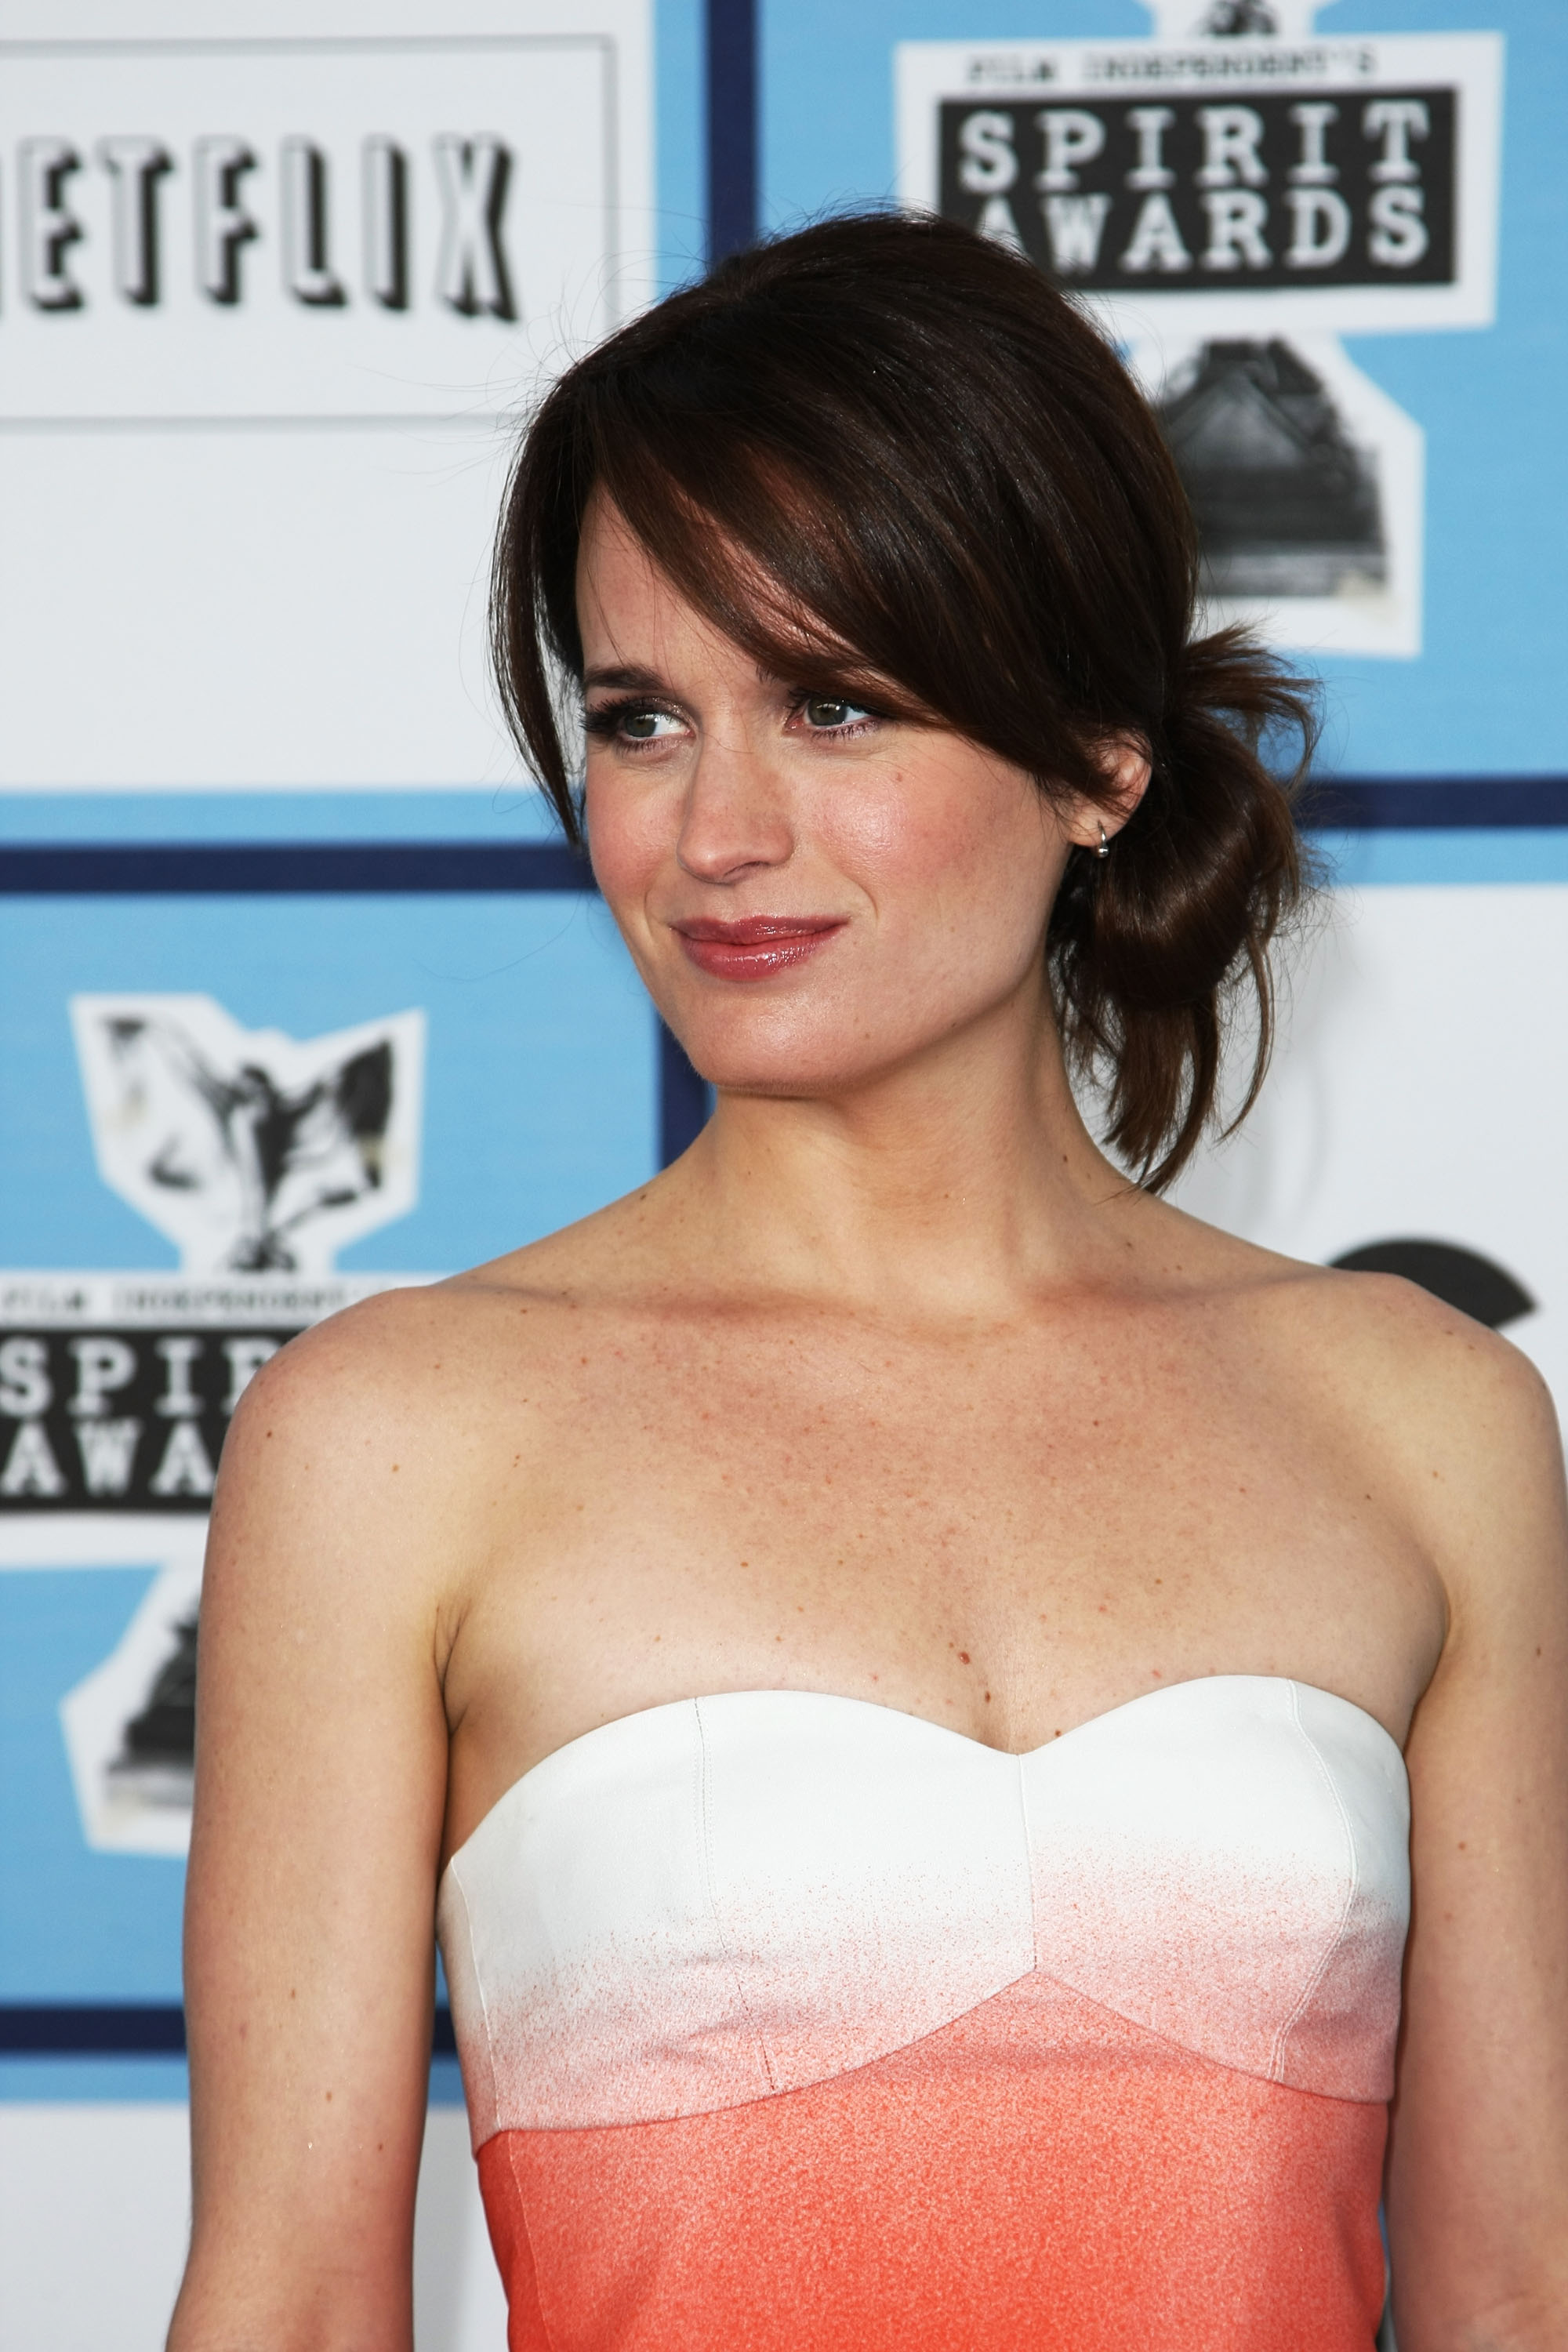 SANTA MONICA, CA - FEBRUARY 23: Actress Elizabeth Reaser arrives at the 2008 Film Independent's Spirit Awards held at Santa Monica Beach on February 23, 2008 in Santa Monica, California. (Photo by Alberto E. Rodriguez/Getty Images)